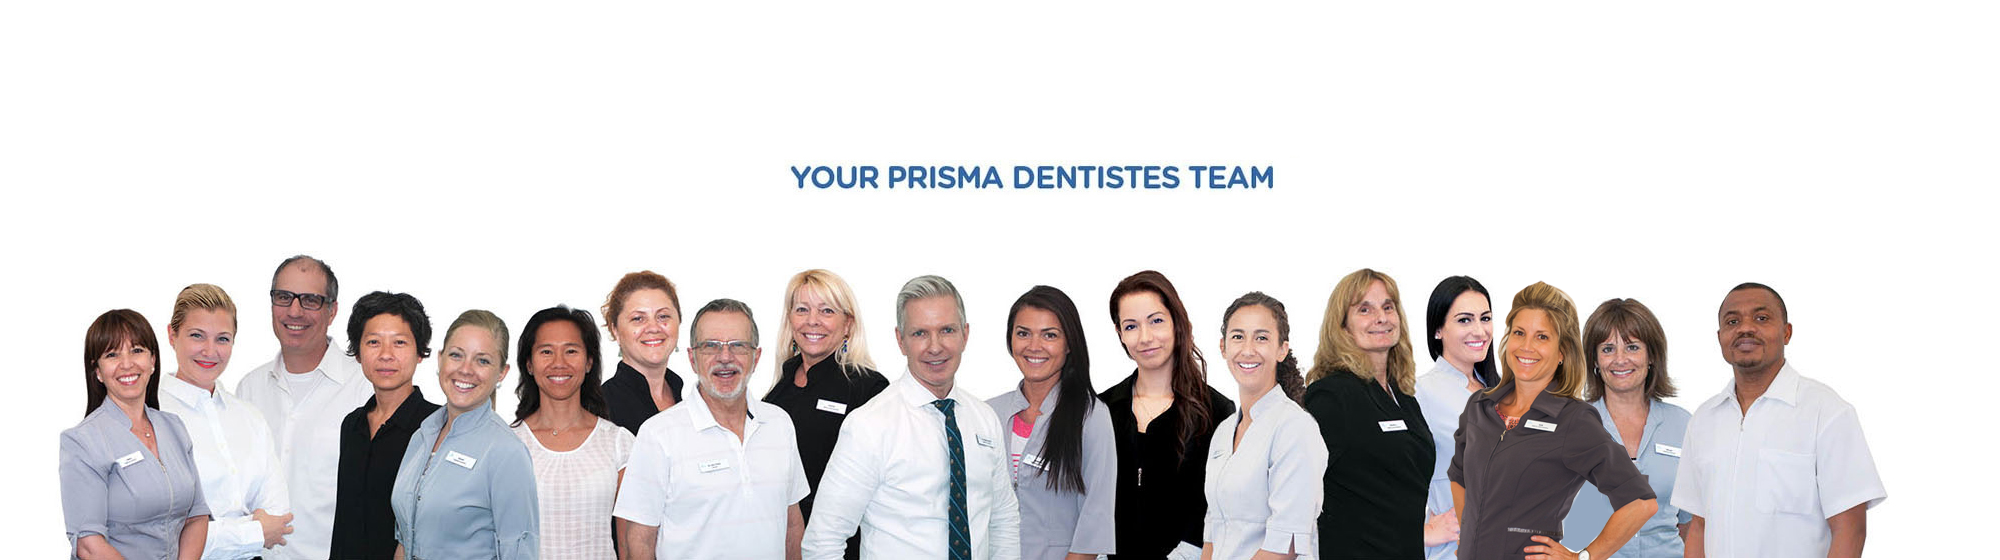 Meet the Prisma Dentist Team in Montreal